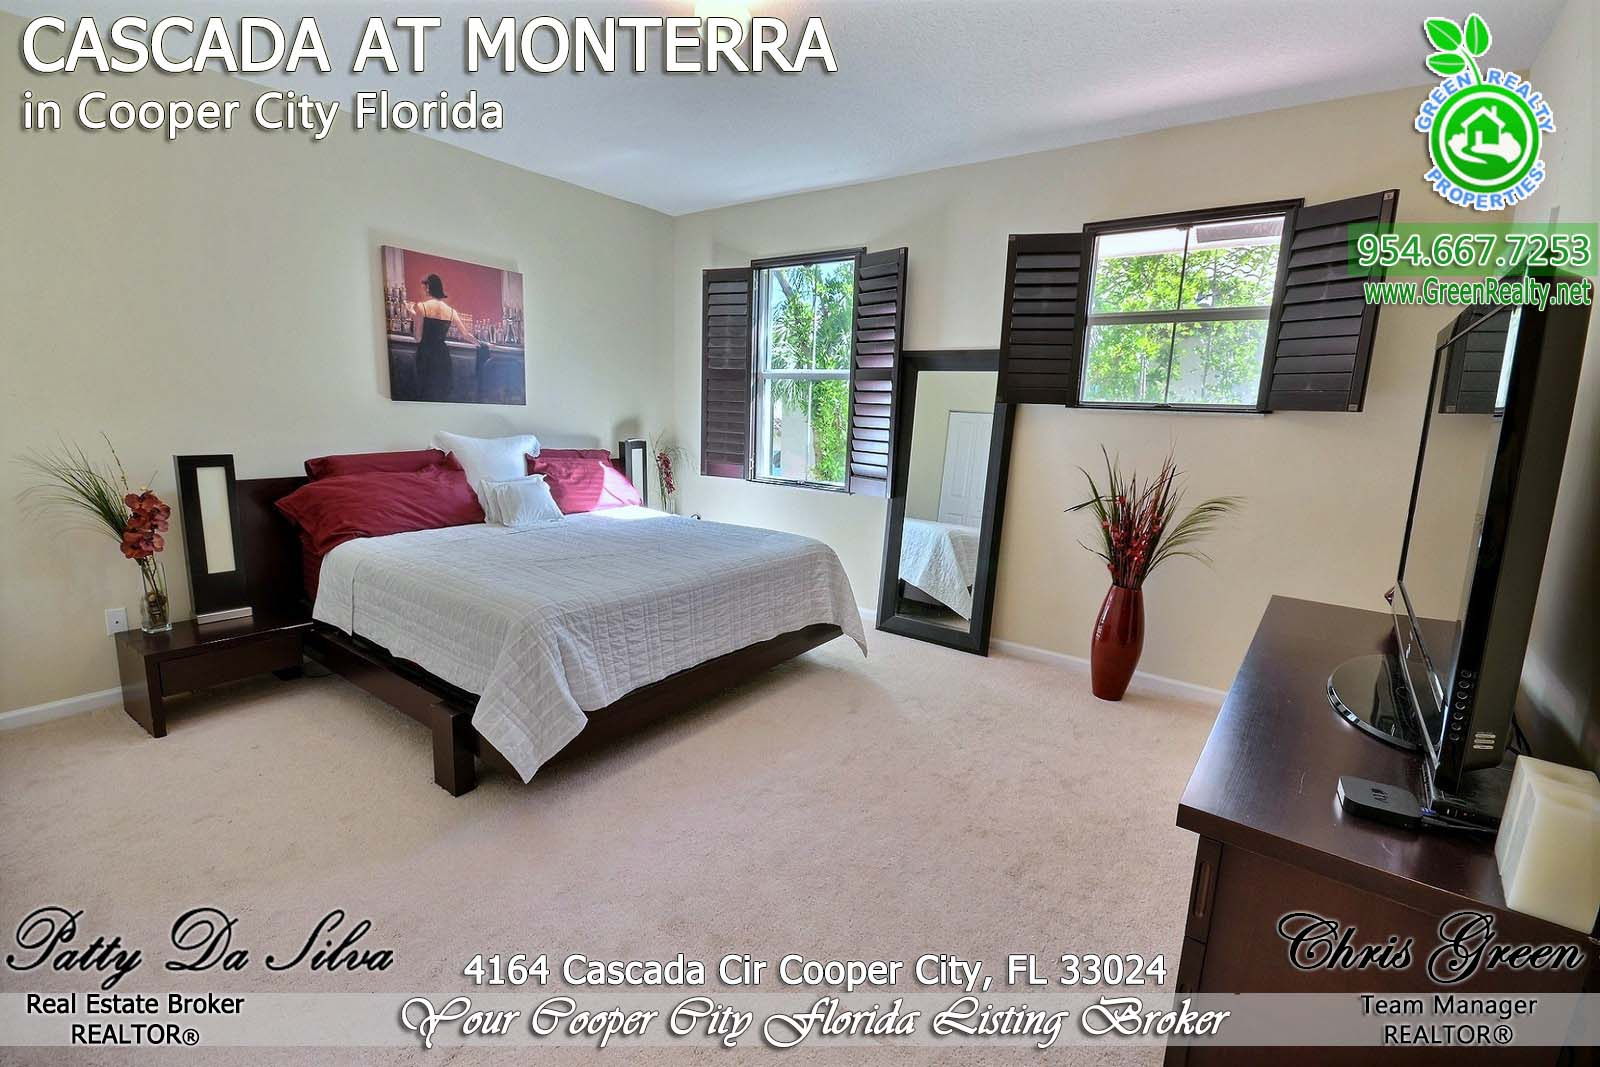 13 Cascada Townhomes For Sale (2)